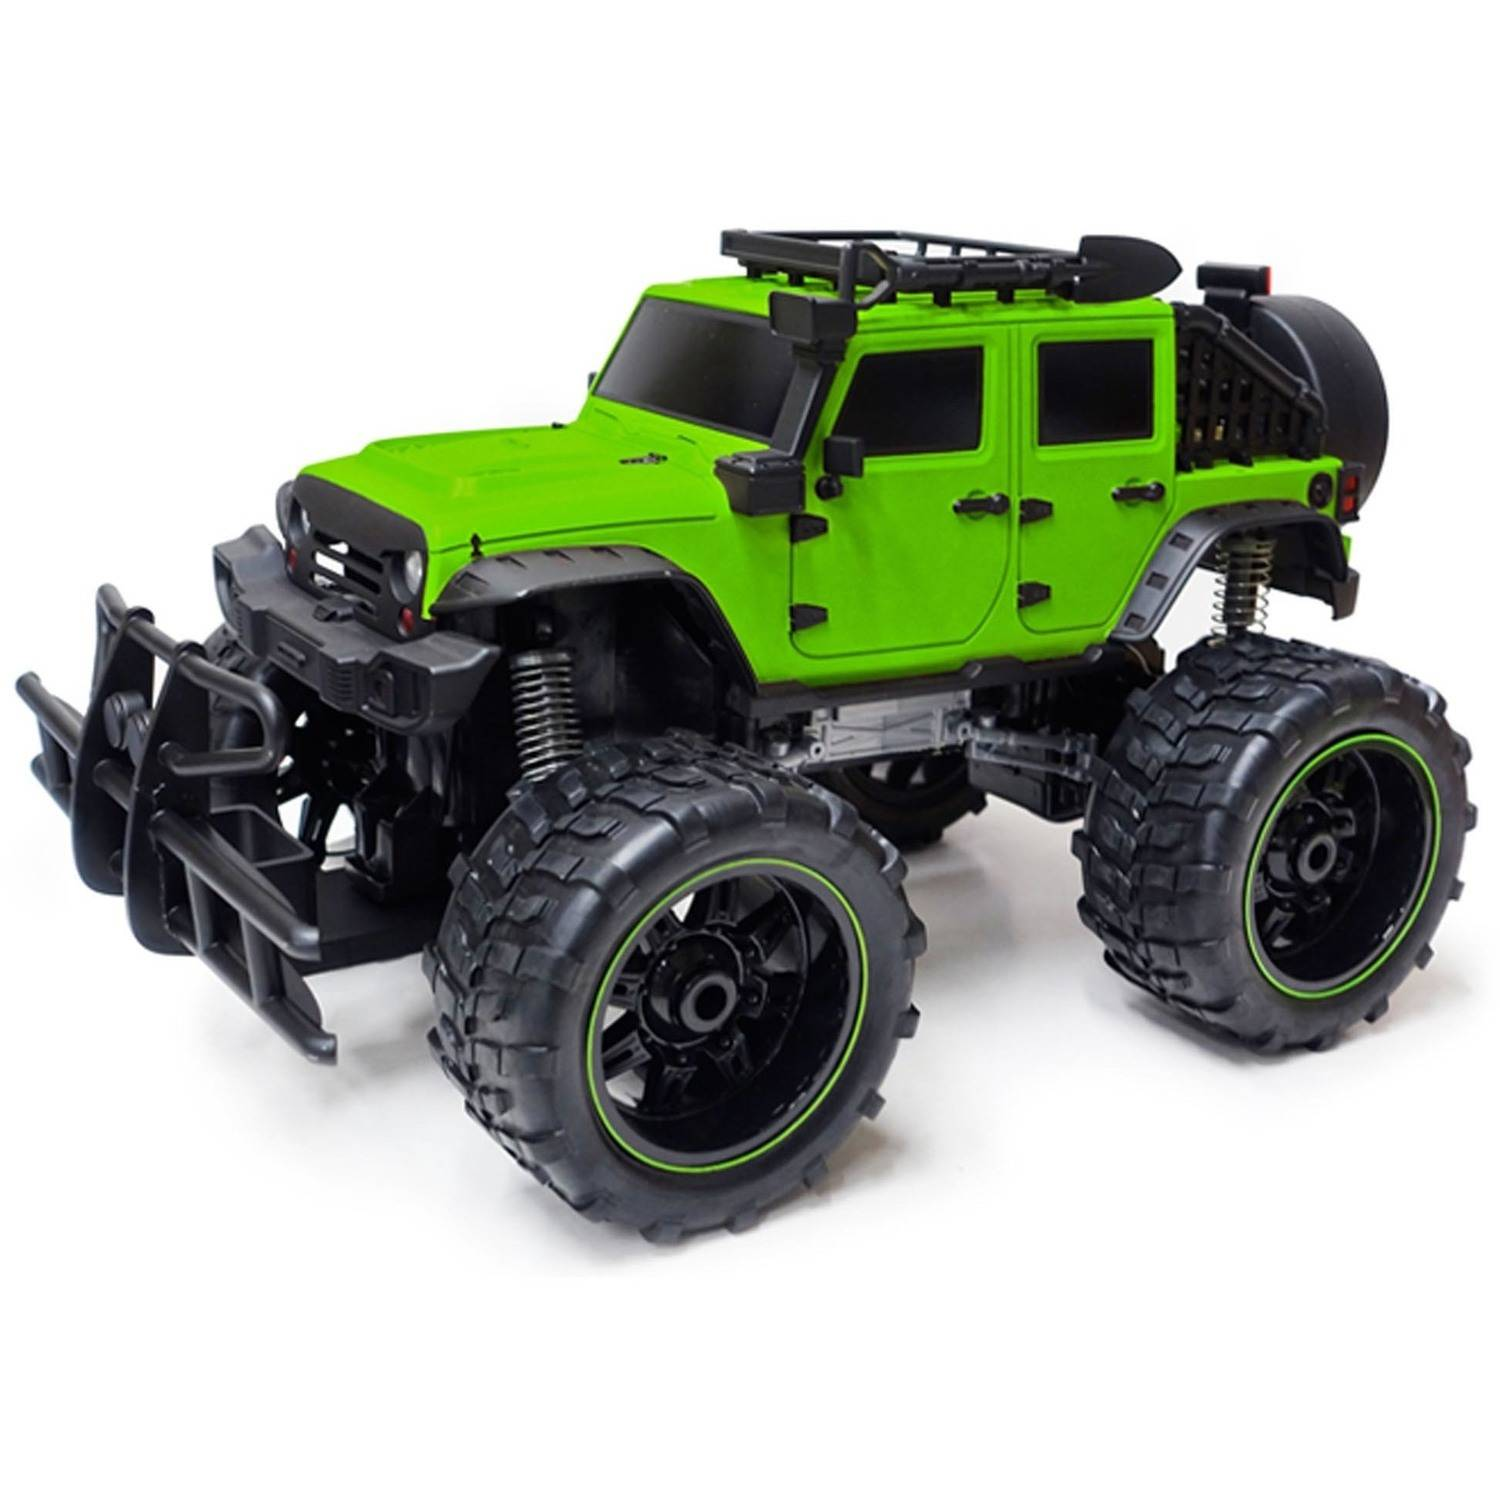 1:10 R/C Full-Function 9.6V Jeep, Green